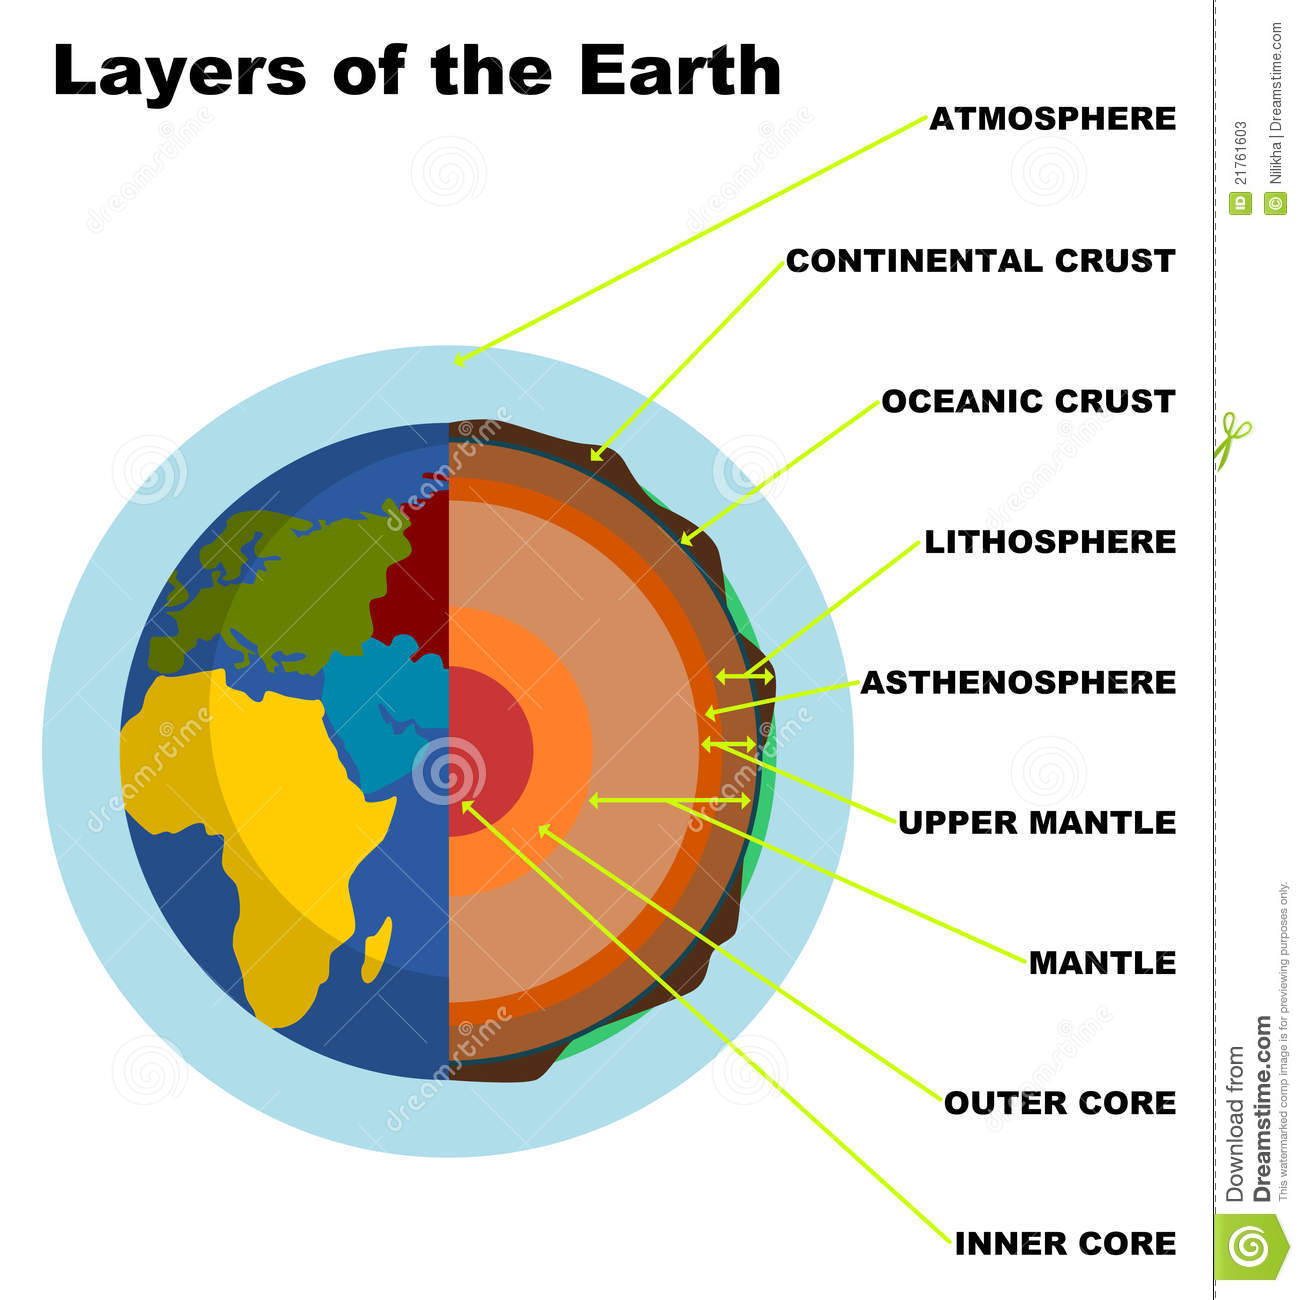 Layers of the earth stock illustration illustration of world layers of the earth stock illustration illustration of world 21761603 pooptronica Images